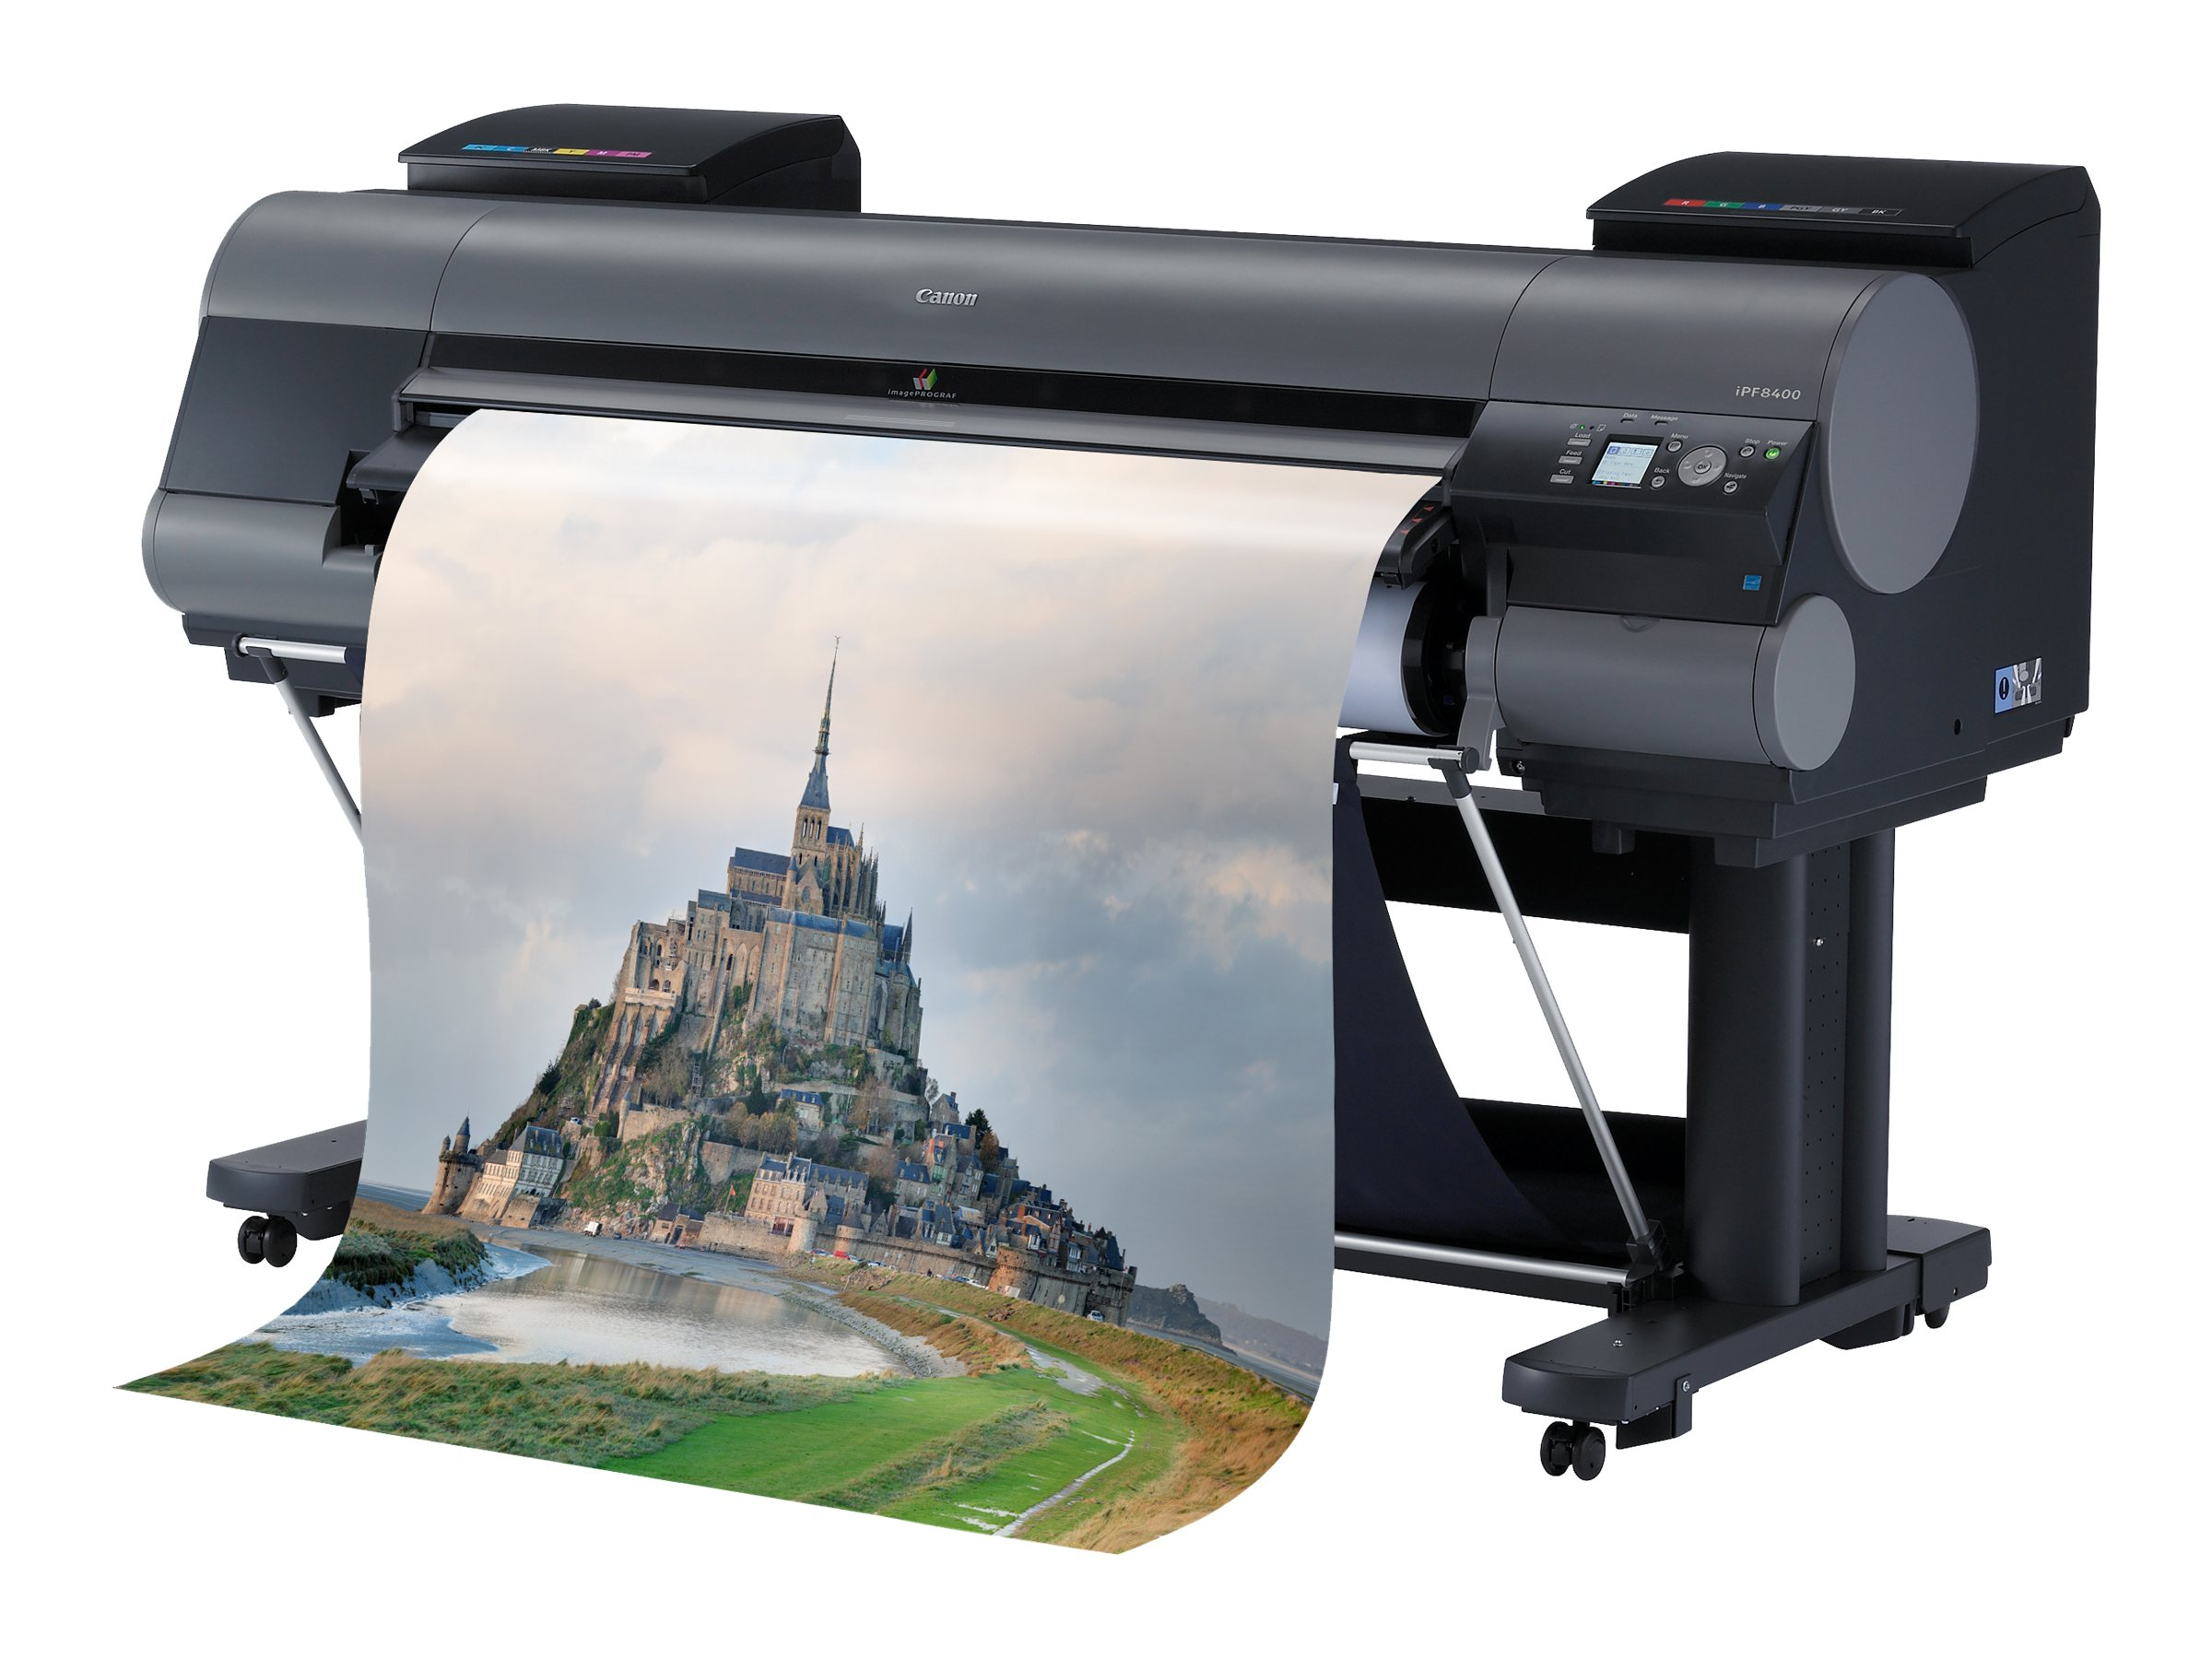 Canon imagePROGRAF iPF8400 Graphic Arts & Photo Printer, 6565B002, 14775405, Printers - Large Format